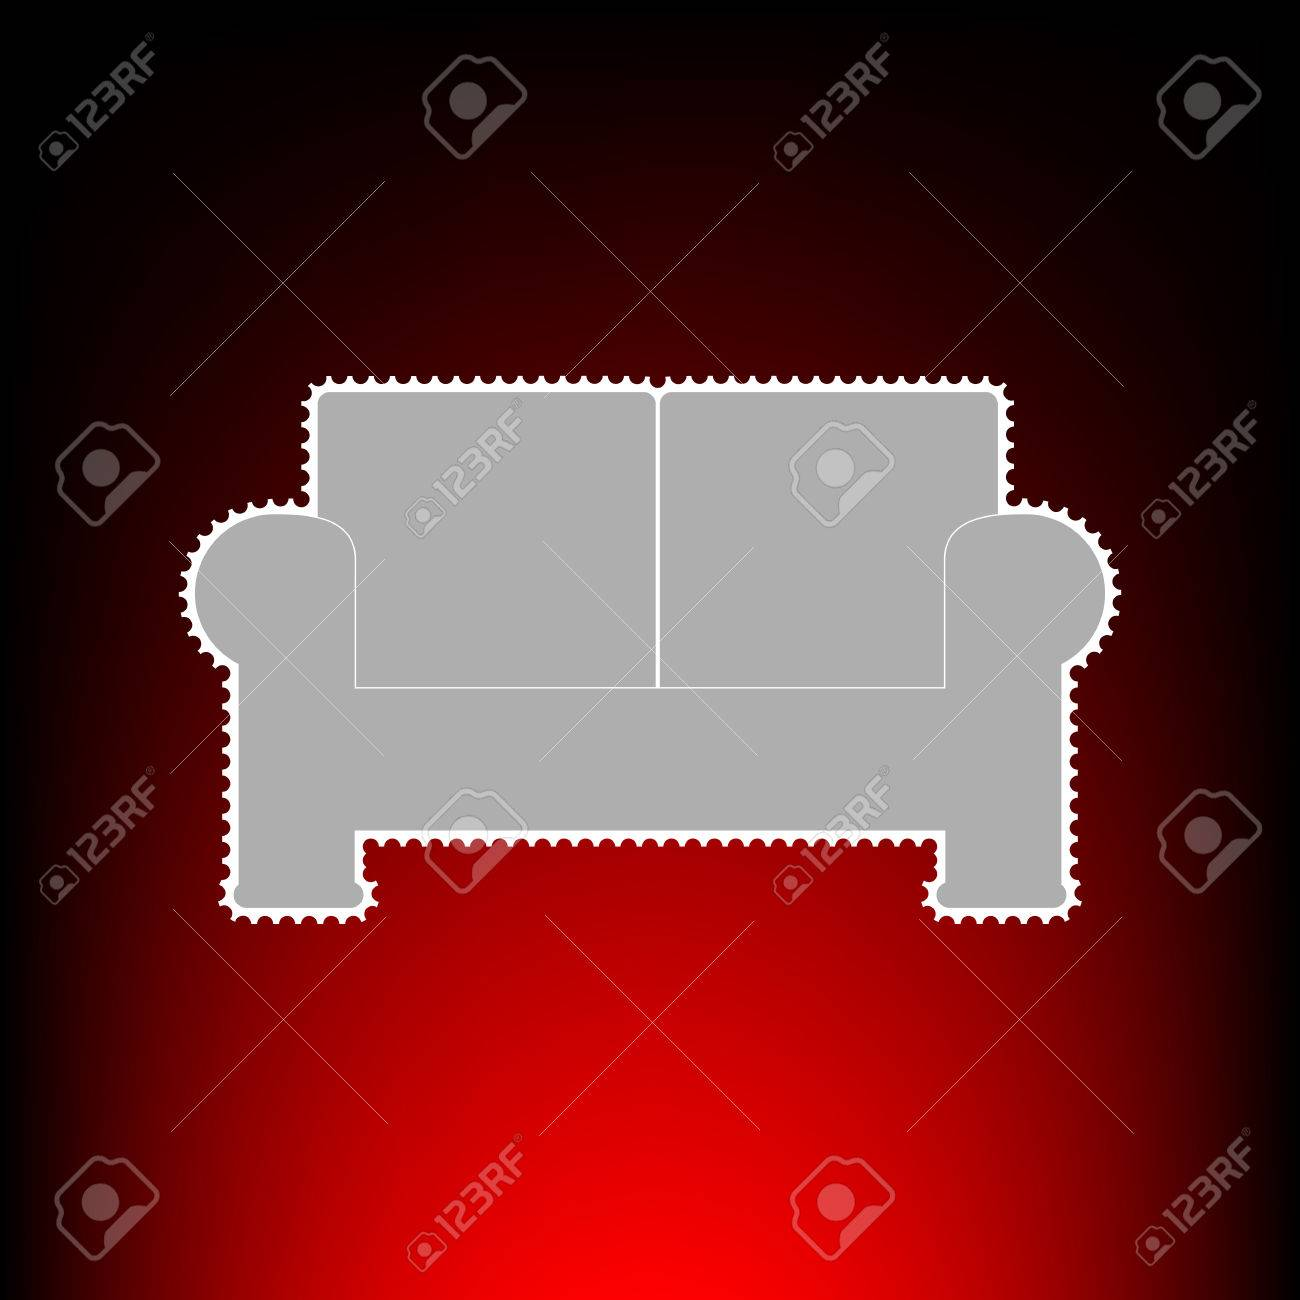 Sofa Sign Illustration Postage Stamp Or Old Photo Style On Red Black Gradient Background